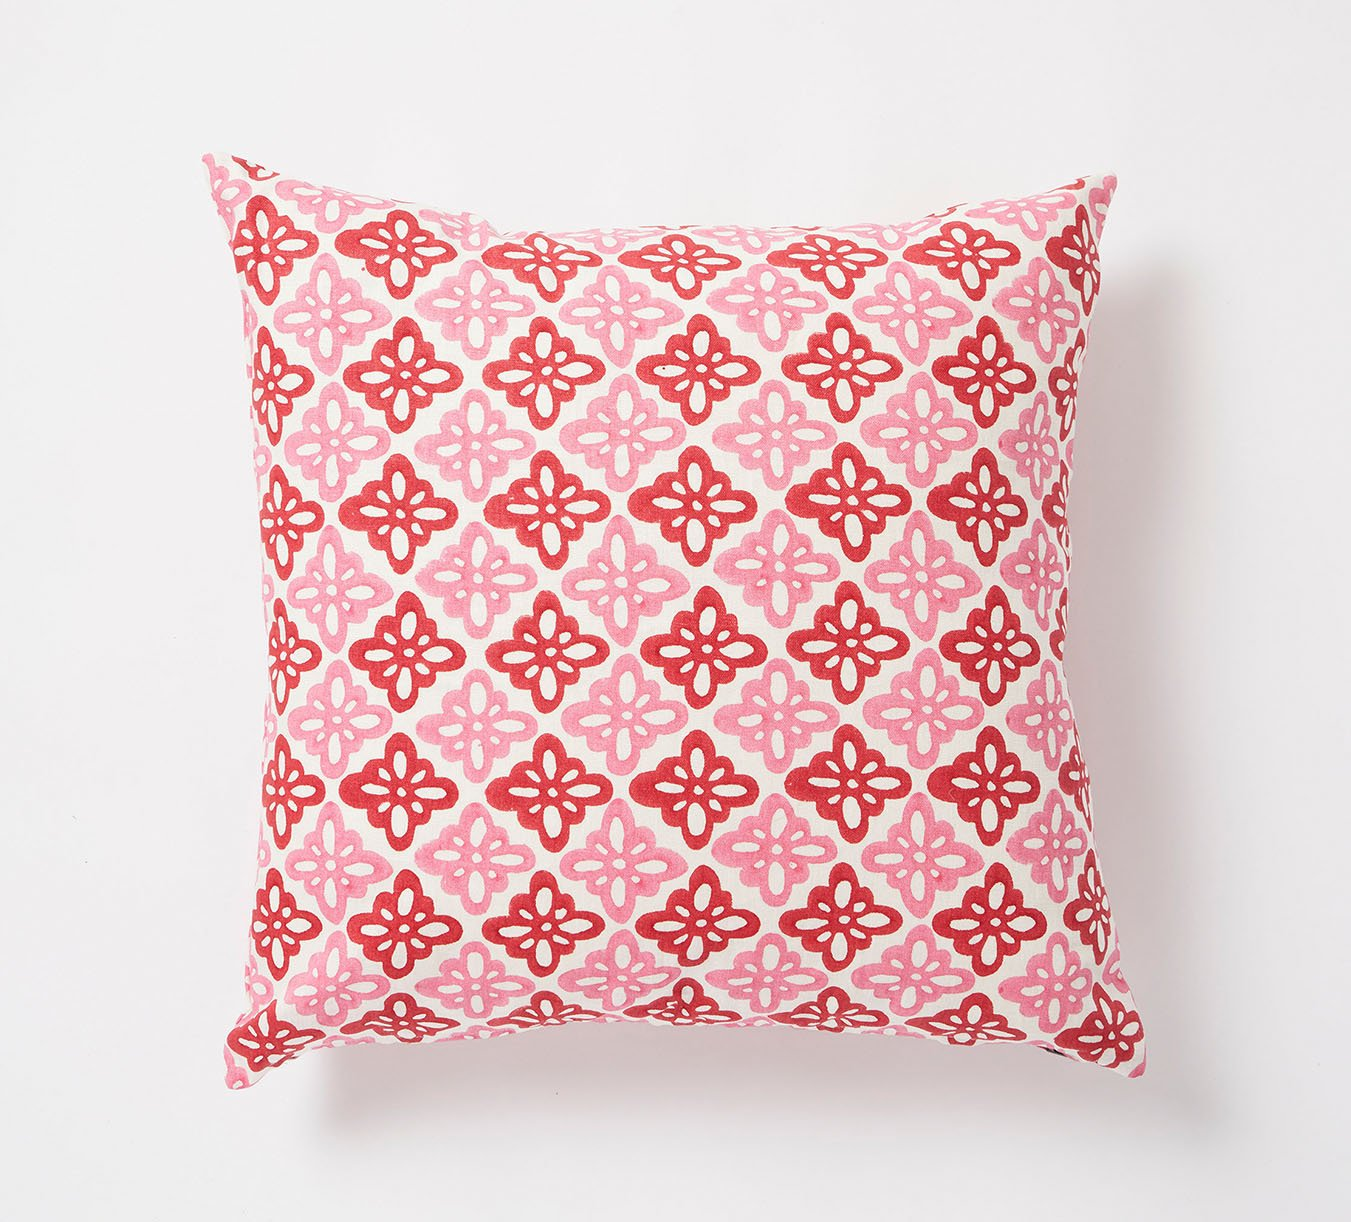 Cushion - Pattee - Pink - 70 x 35 cm